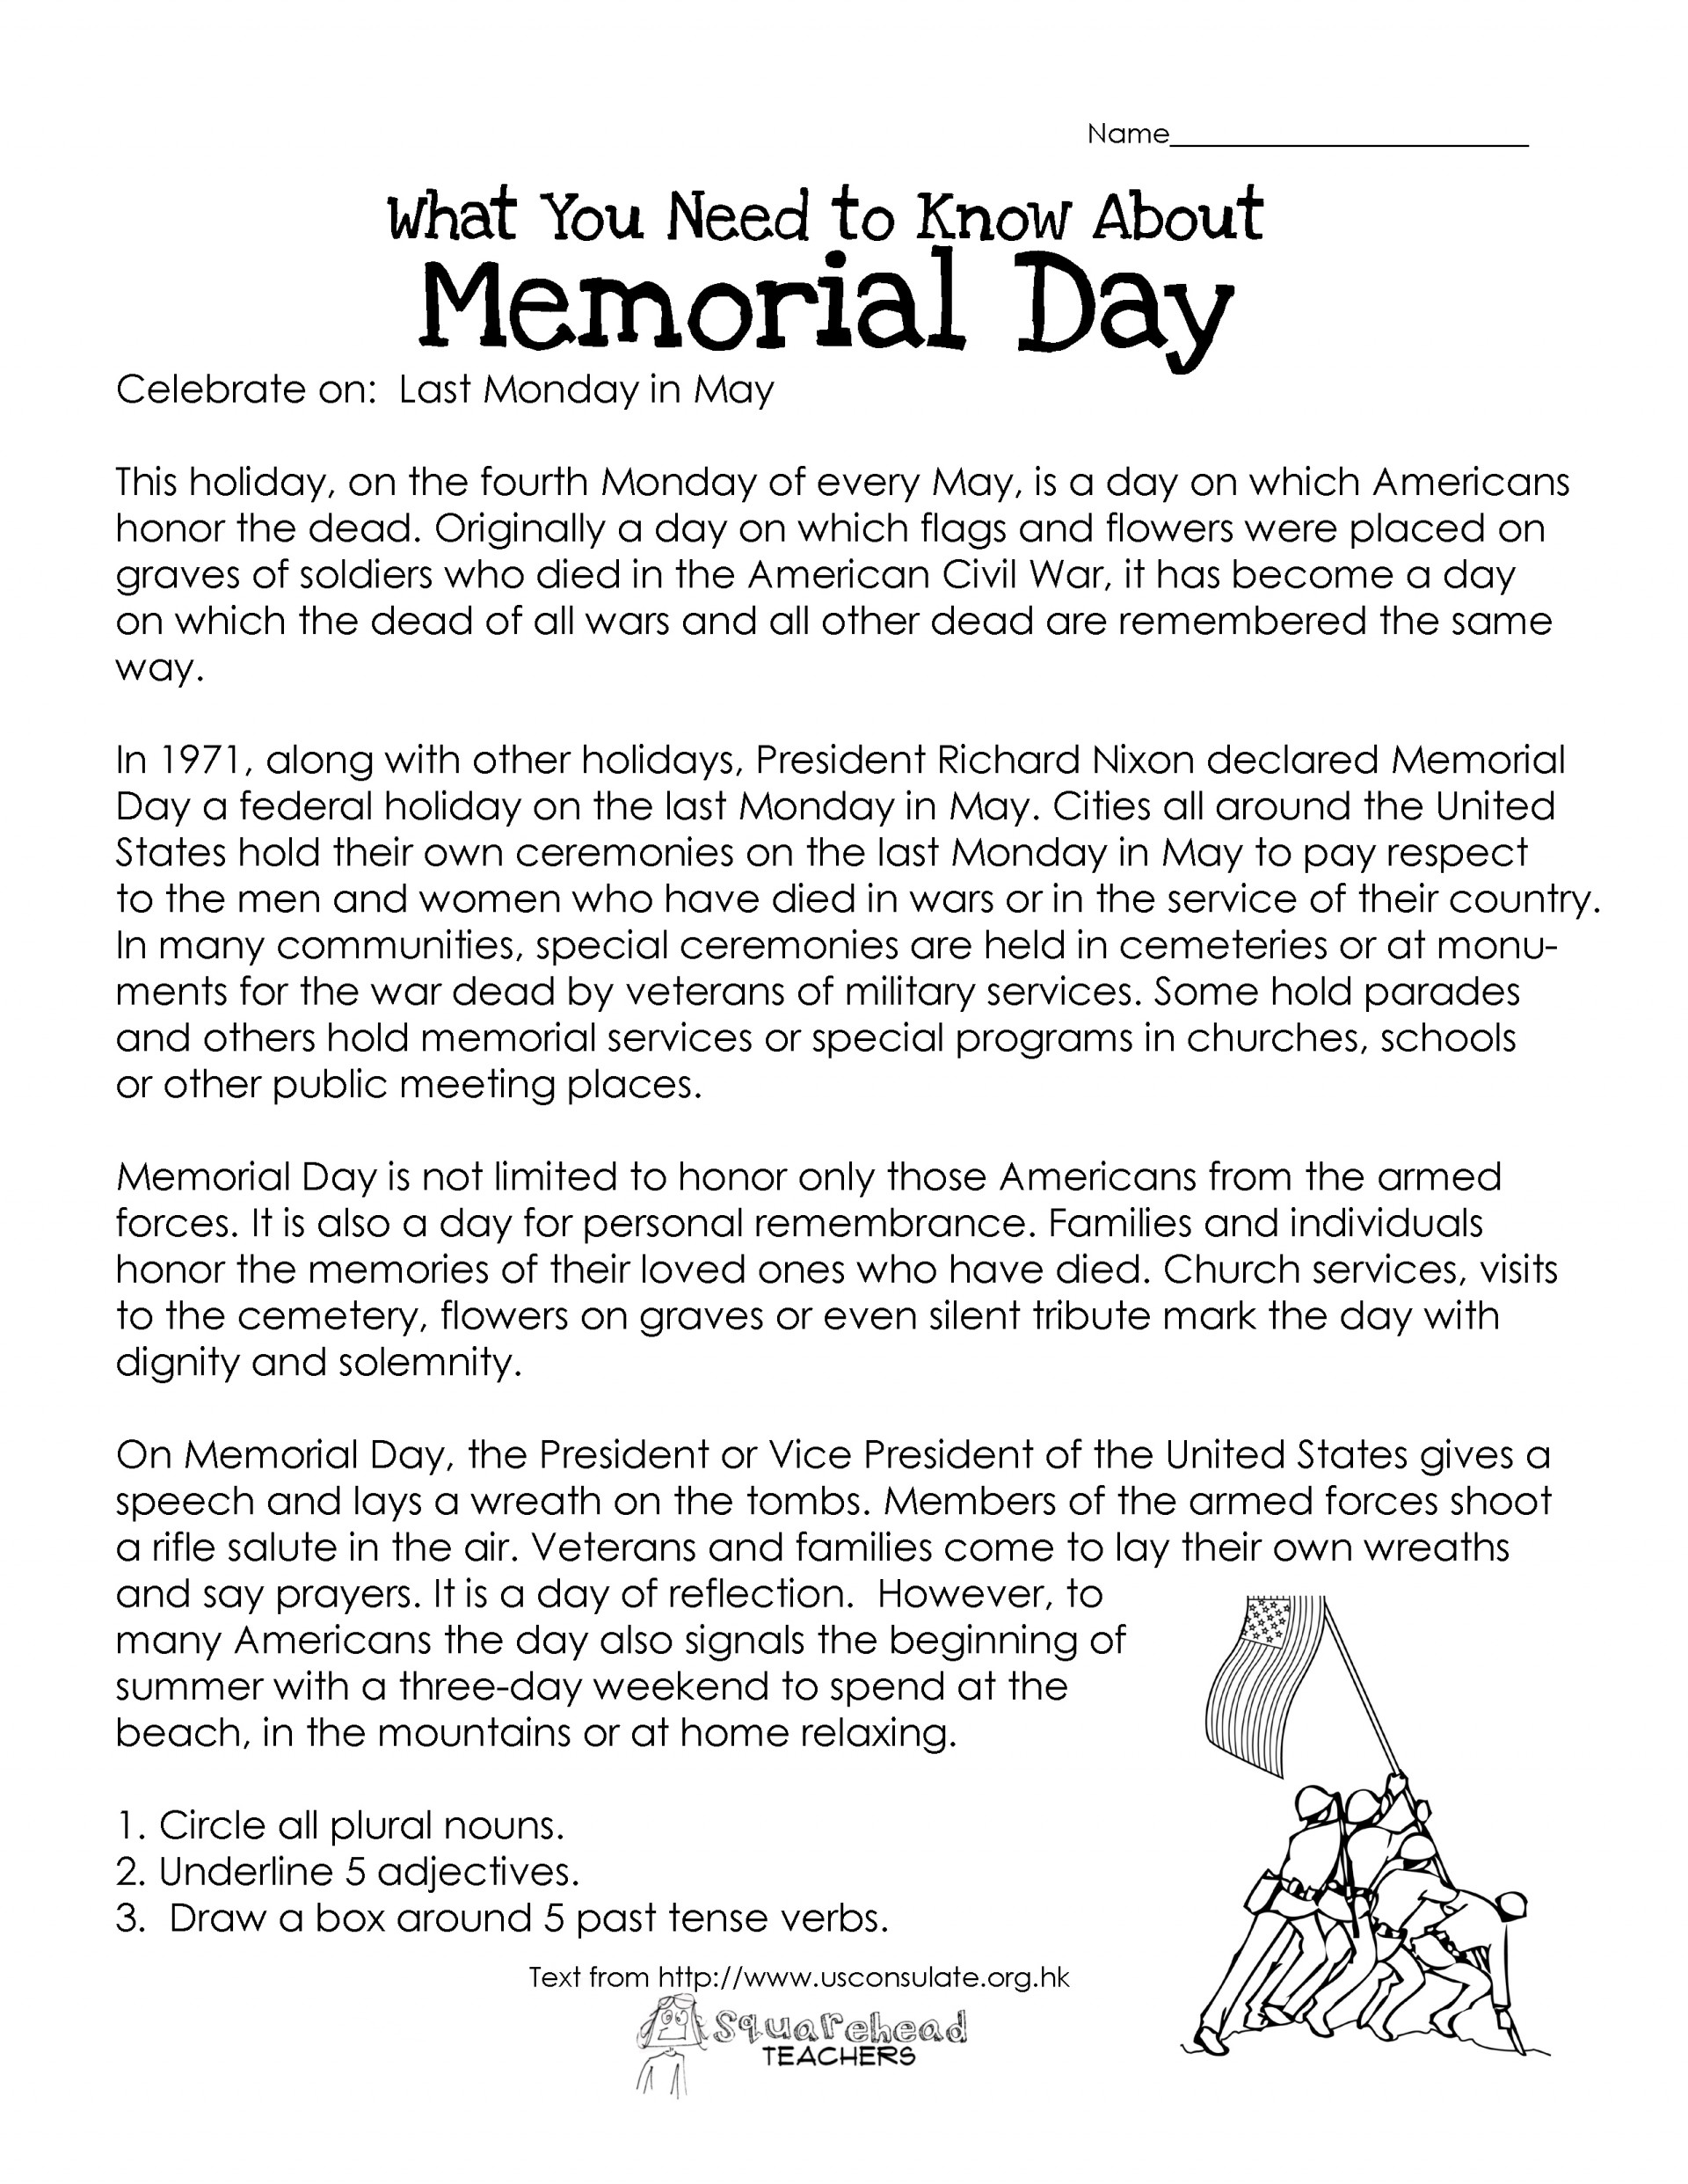 011 Memorial1 Essay Example Veterans Best Day Writing Prompts Elementary Contest Ideas 1920